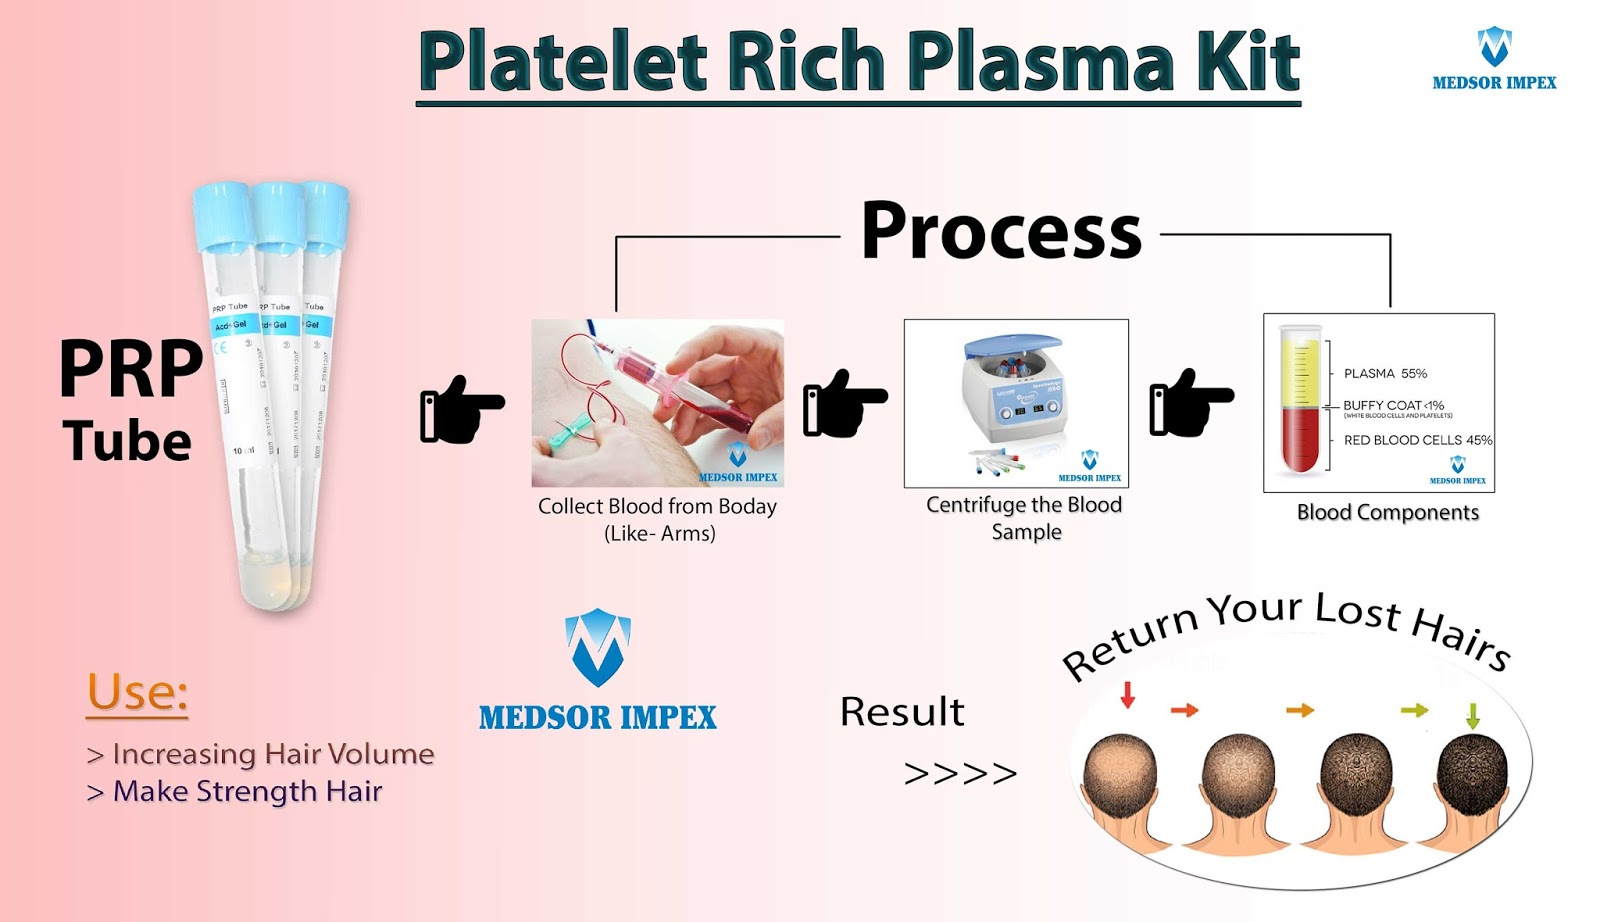 Platelet Rich Plasma PRP Tube PRP Tube With 10 MI